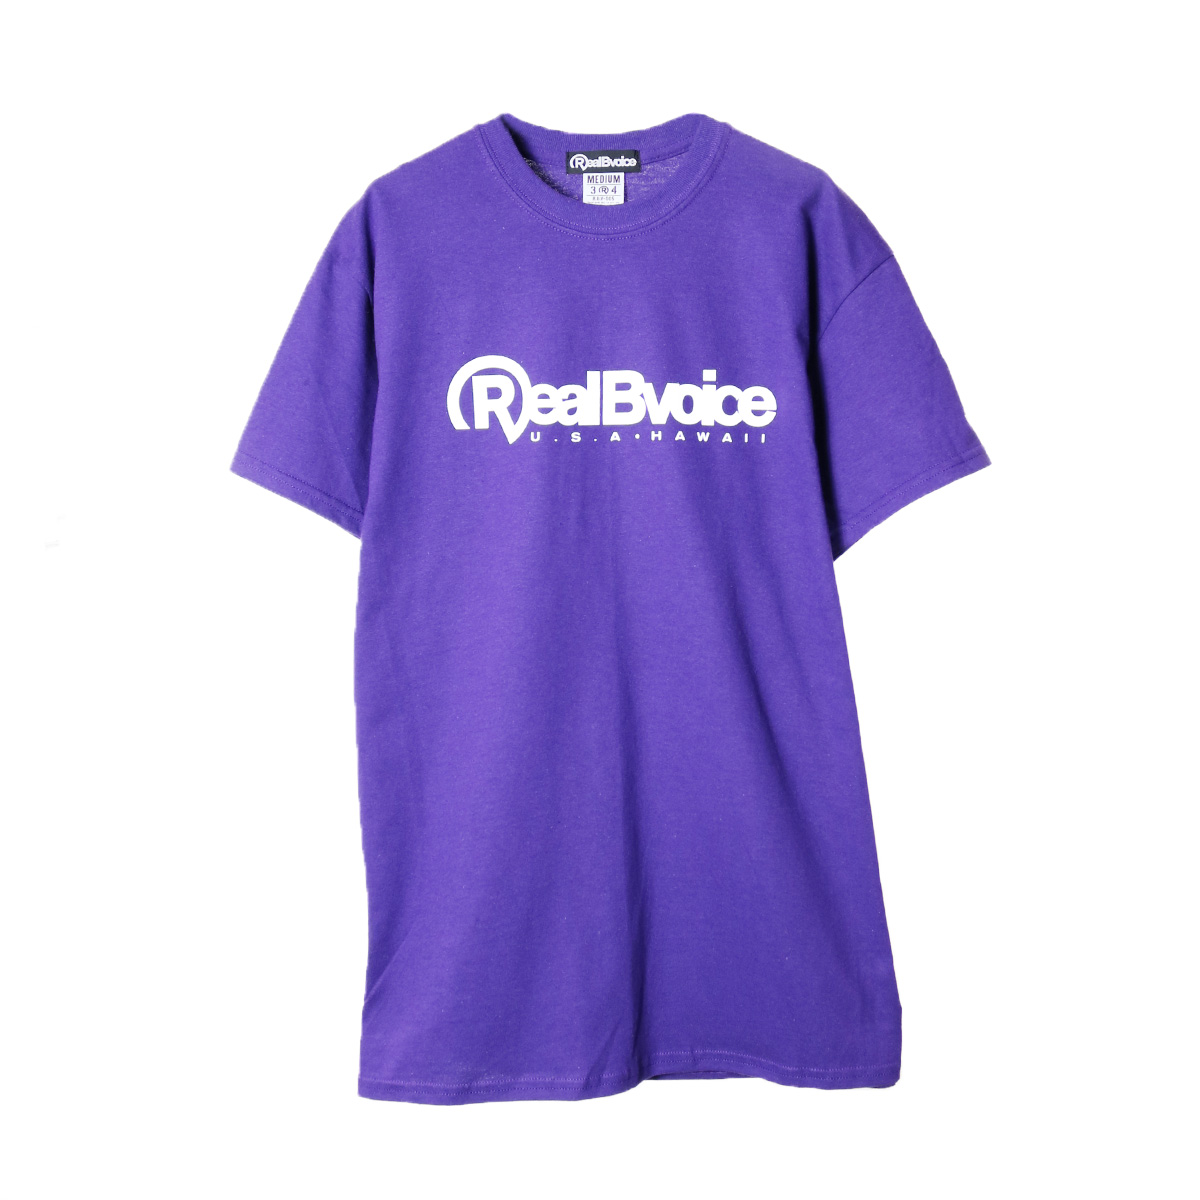 COLORFUL LOGO T-SHIRT